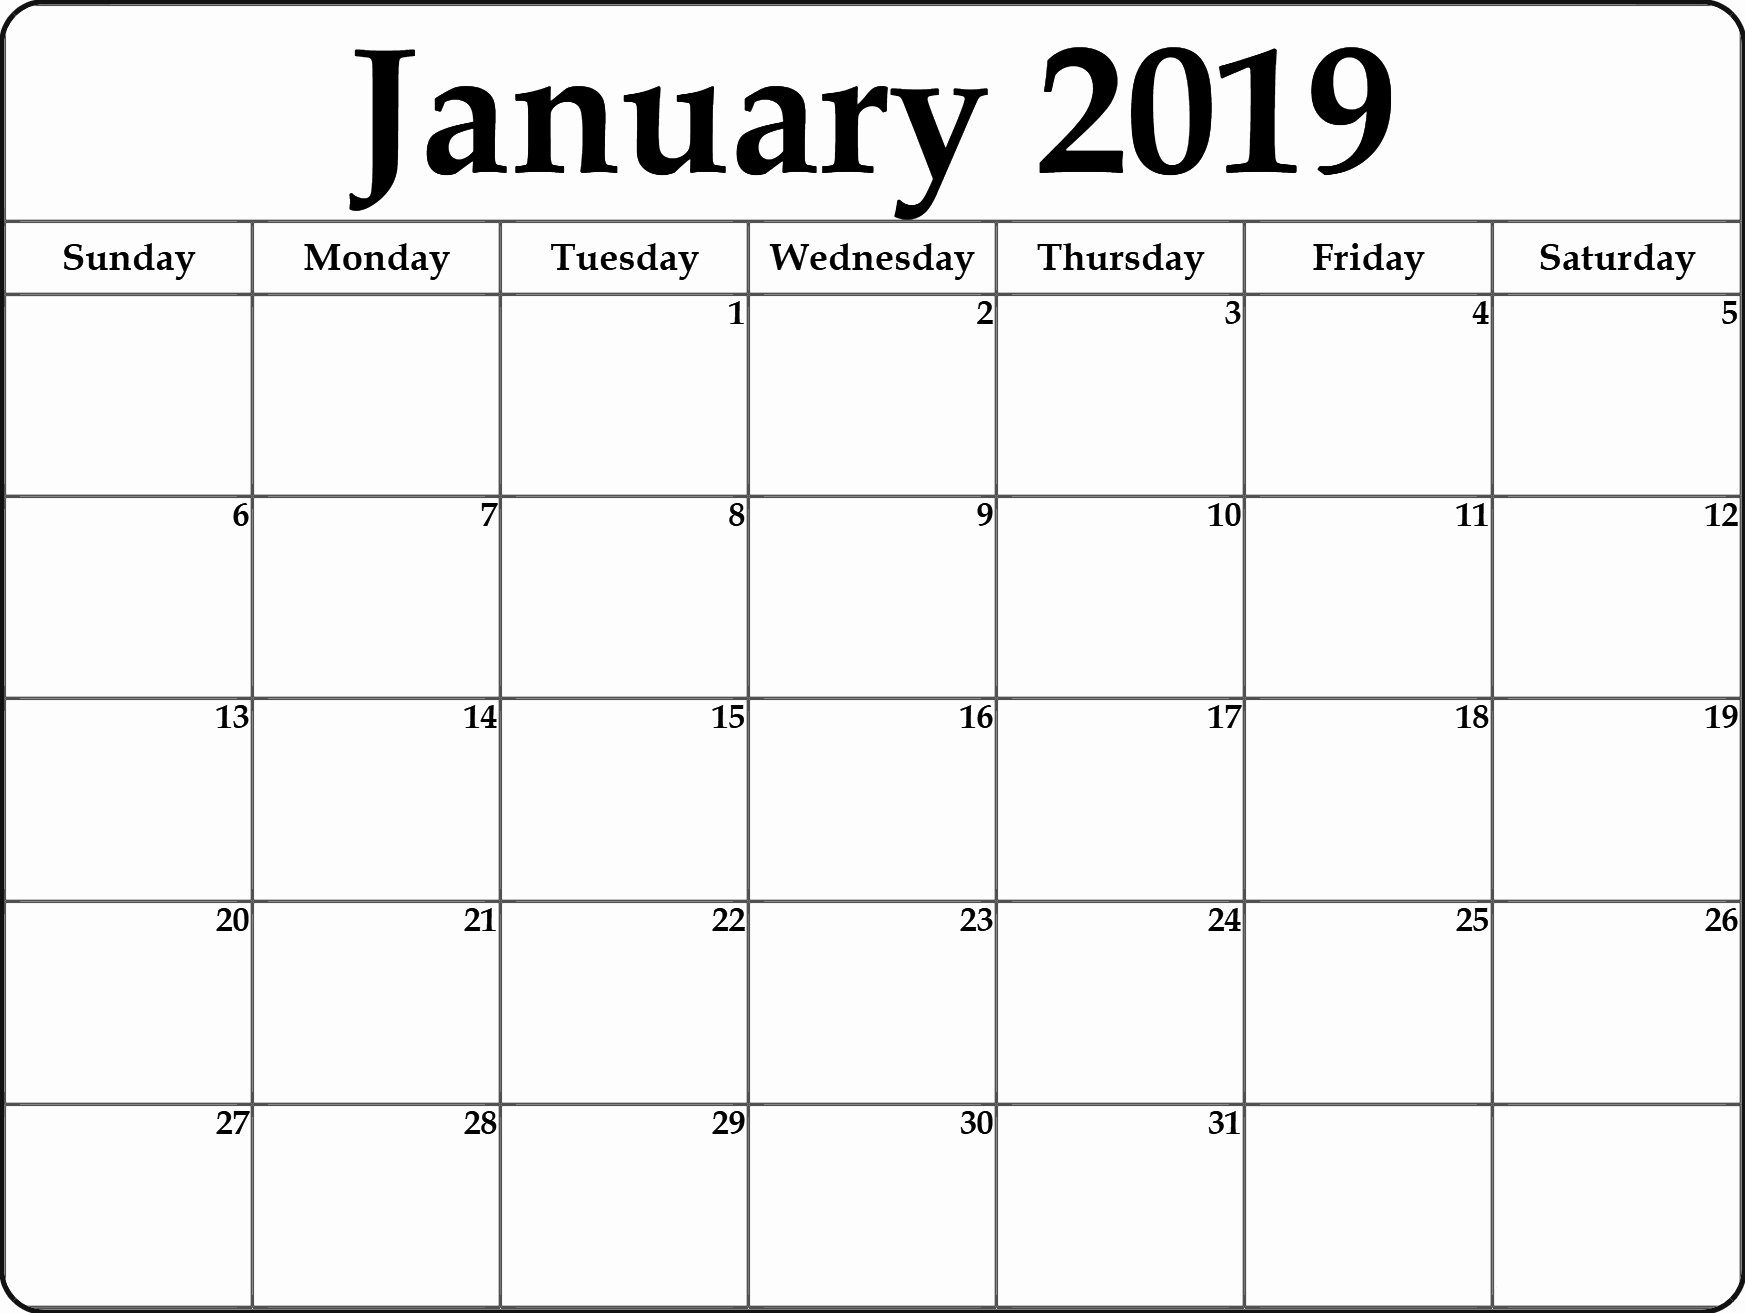 Blank January 2019 Calendar Template Unique Calendar January 2019 In Pdf Word Excel Printable Template